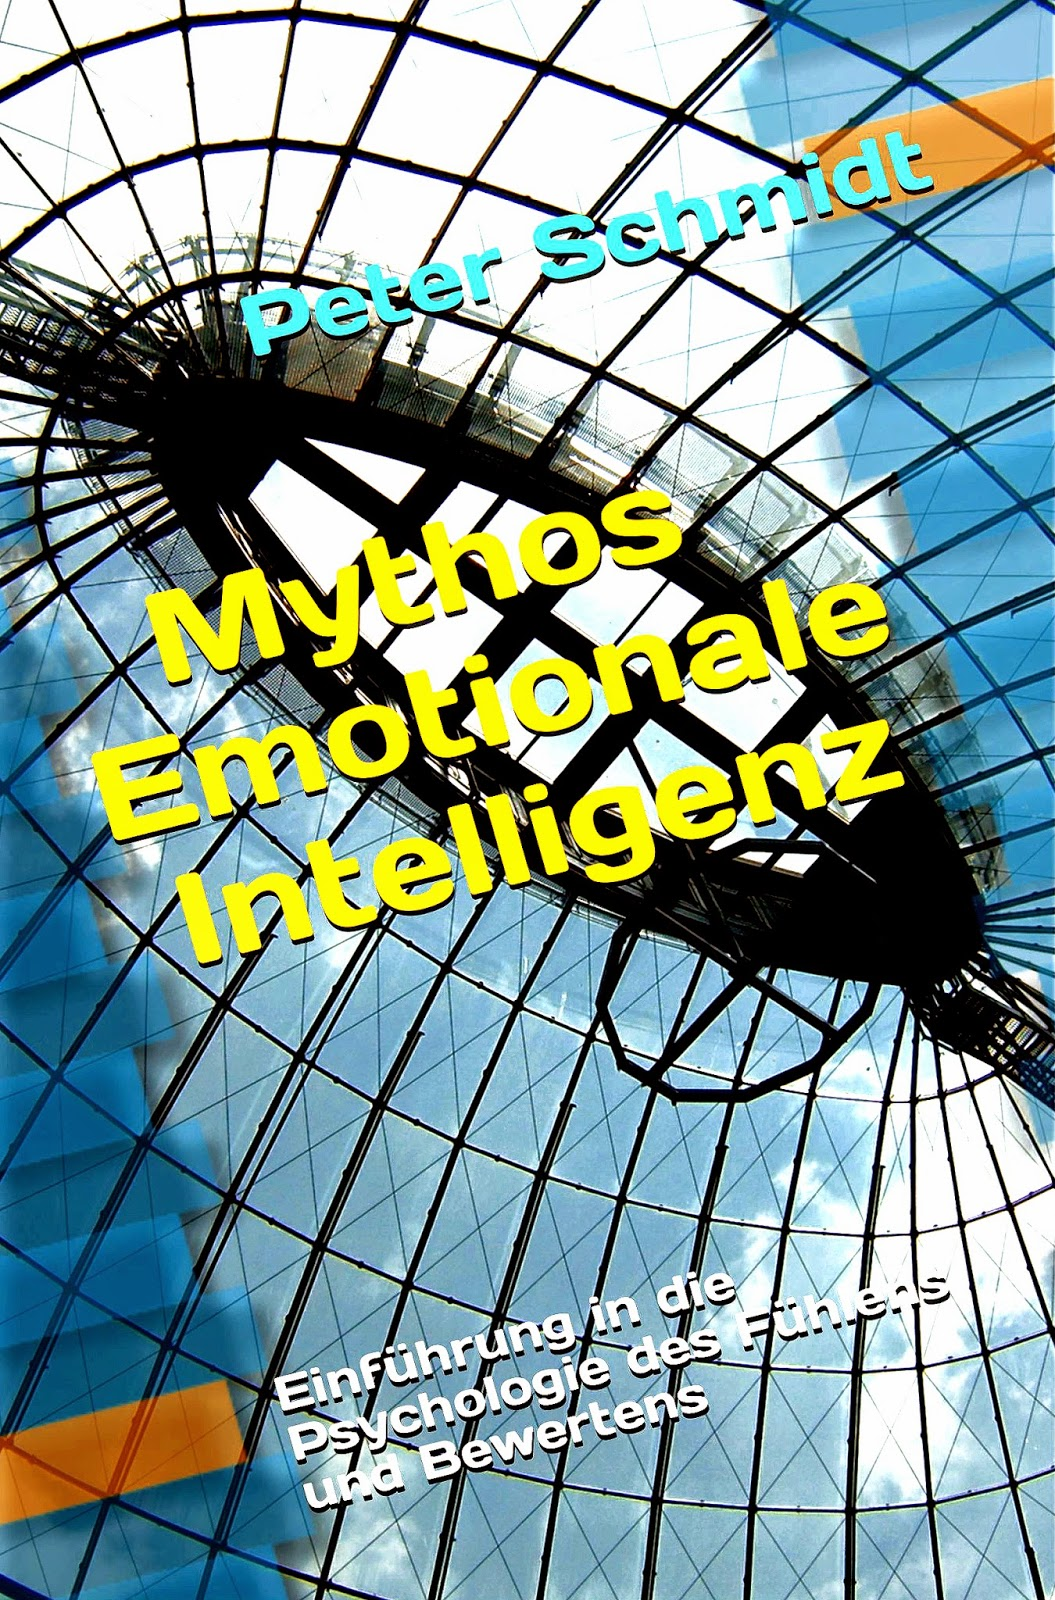 https://www.amazon.de/Mythos-Emotionale-Intelligenz-Einf%C3%BChrung-Psychologie/dp/1507707940/ref=sr_1_1?ie=UTF8&qid=1467975932&sr=8-1&keywords=Mythos+emotionale+intelligenz